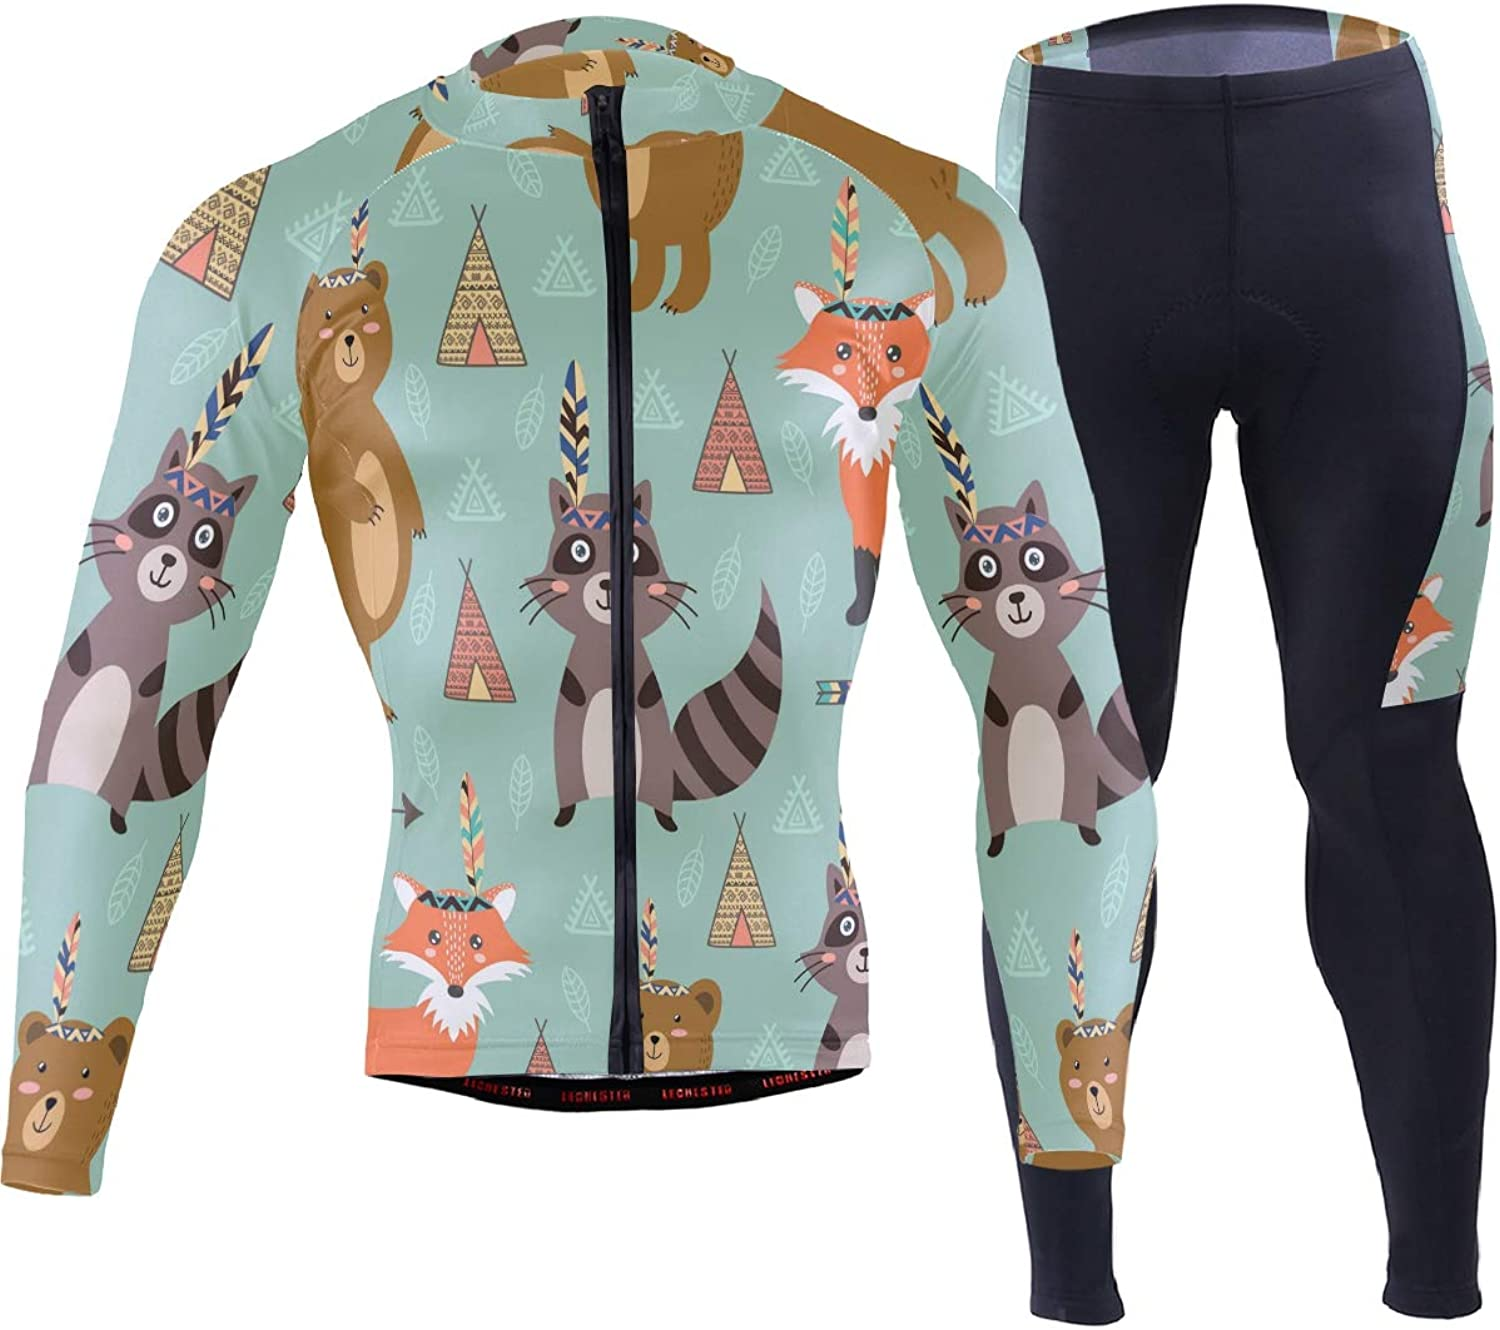 FANTAZIO Animals Bear Fox and Raccoon Cycling Jersey Suit Cycling Clothes for Men Riding Bike Wear 3D Padded Pants